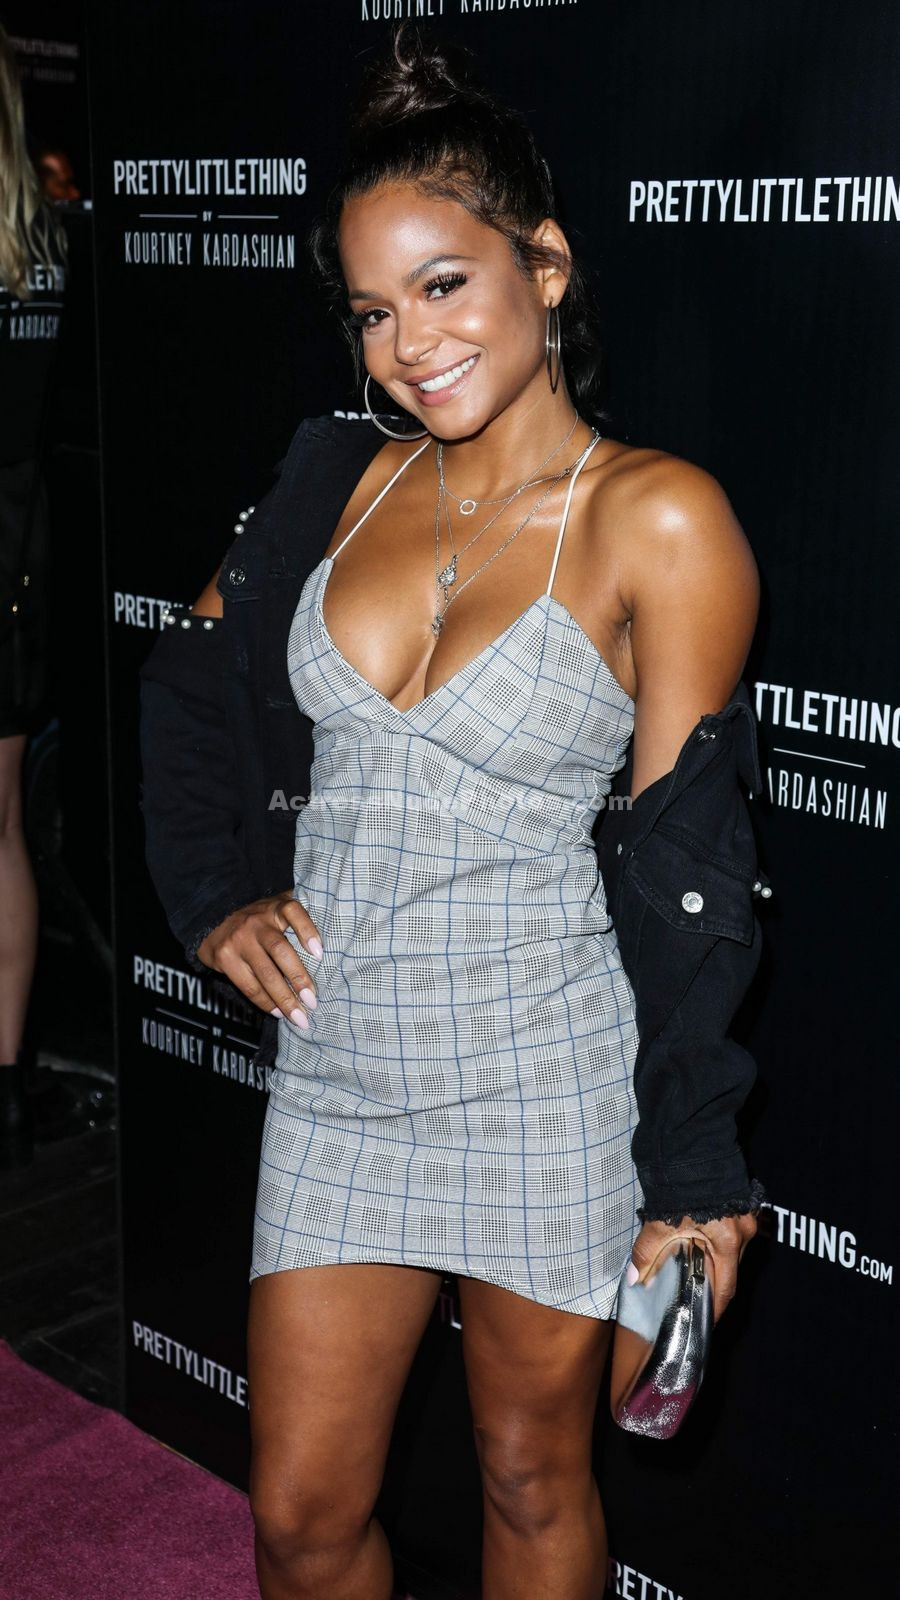 Christina Milian showed off her titties